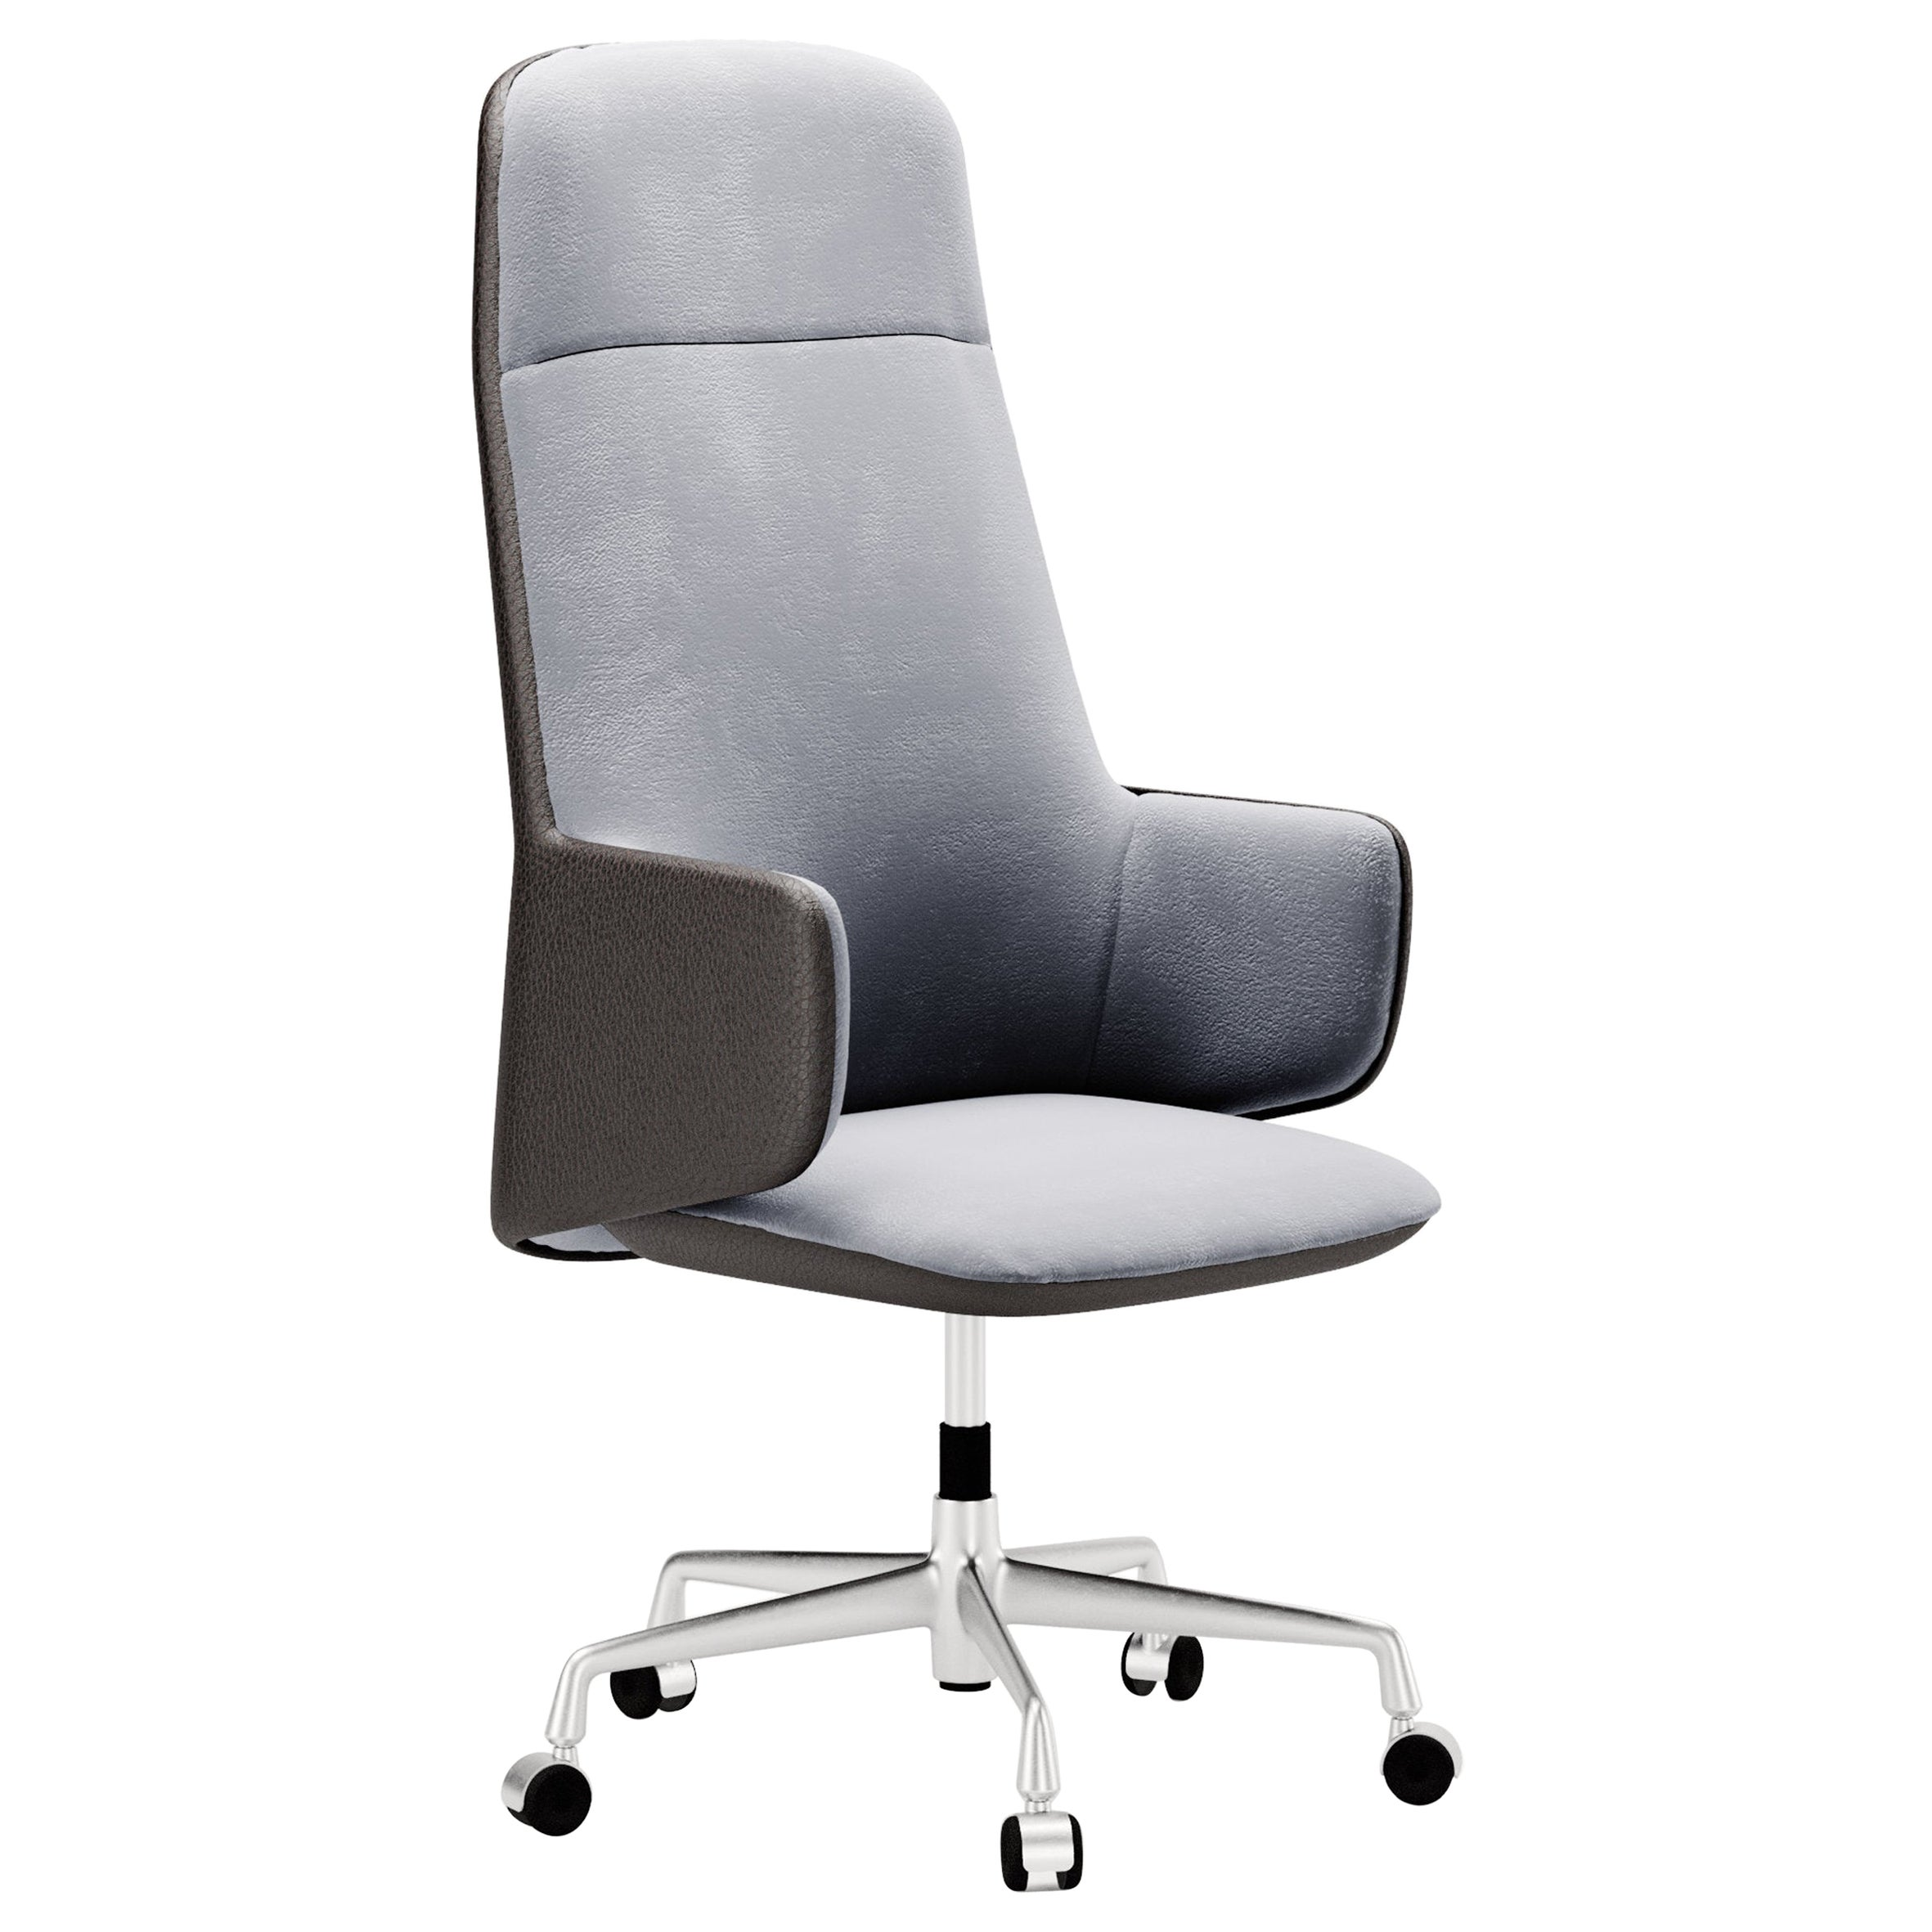 Contemporary Office Chair by Fabio Arcaini Velvet Leather Nabuk